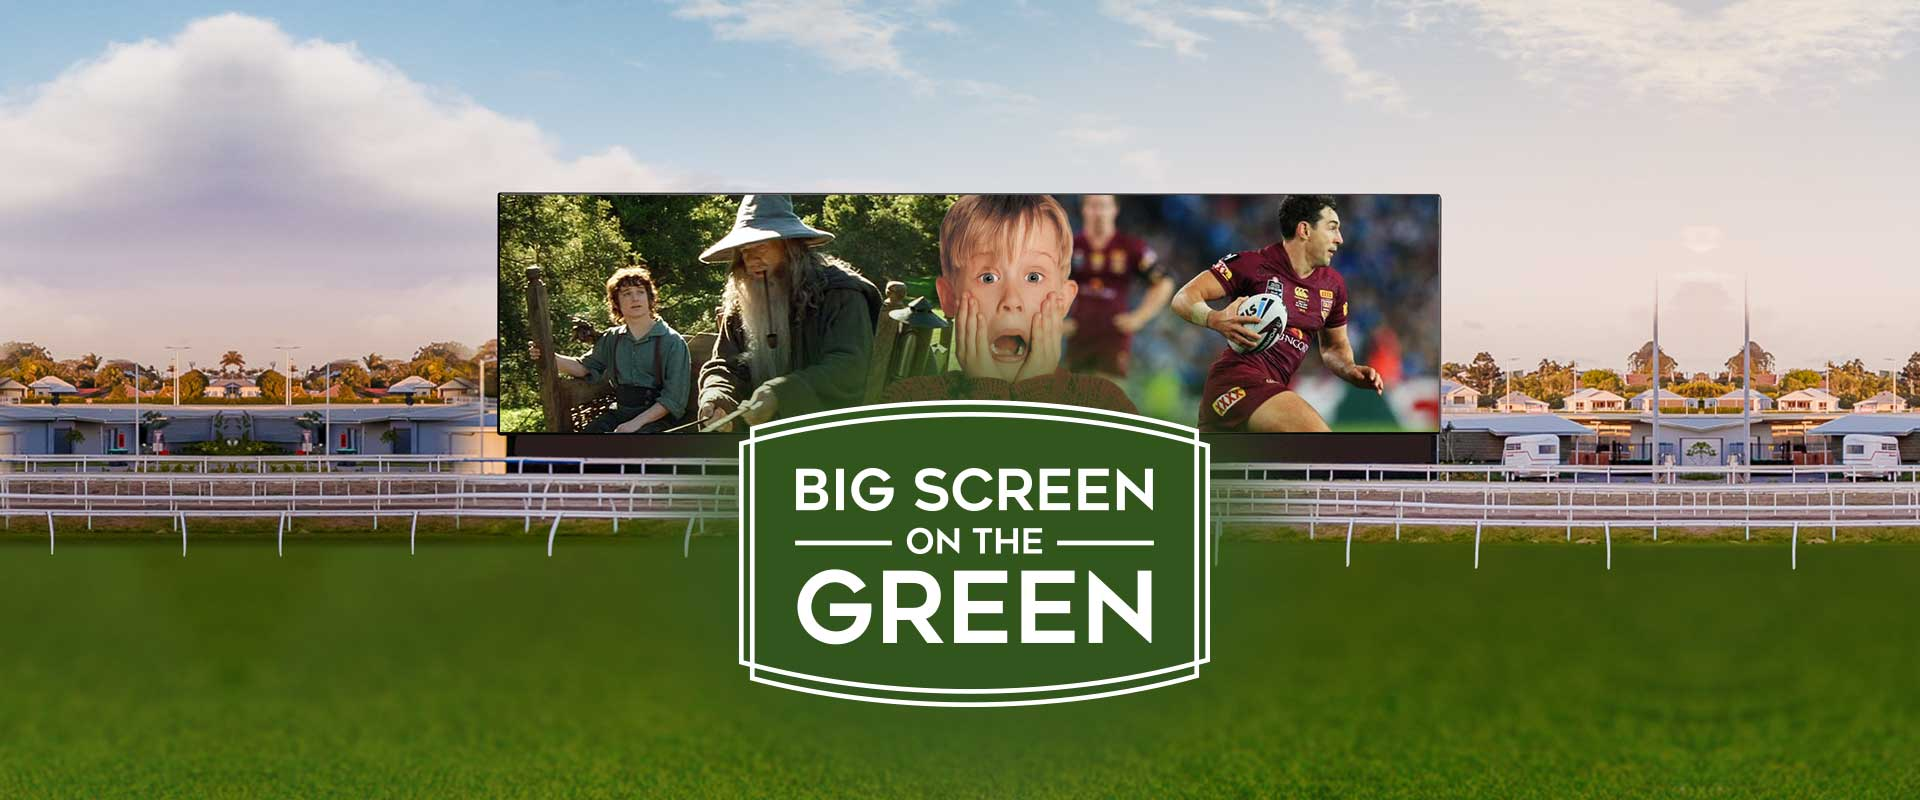 Big Screen On The Green Background_Page Banner